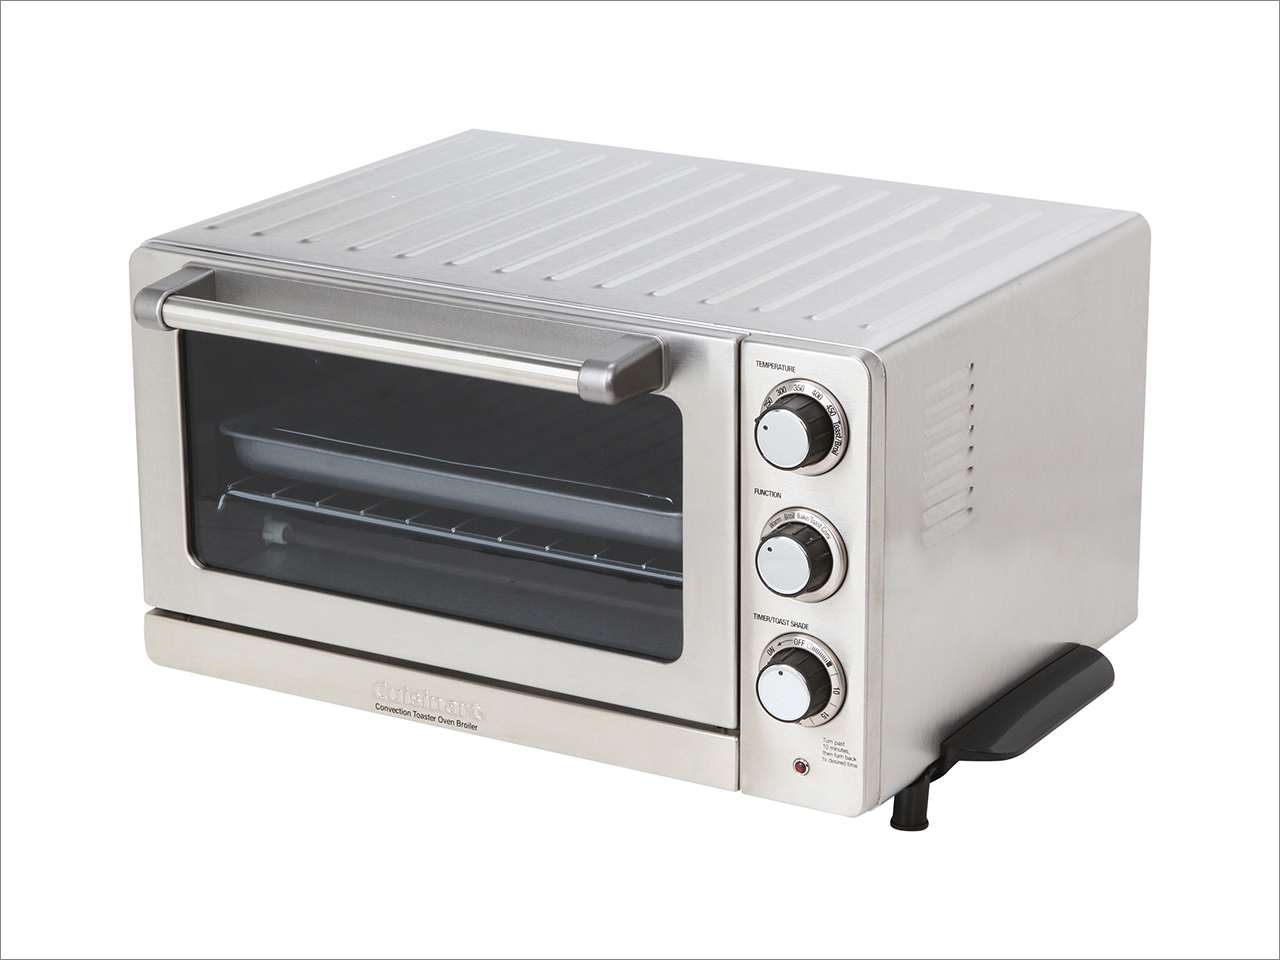 Cuisinart Countertop Microwave Oven Stainless